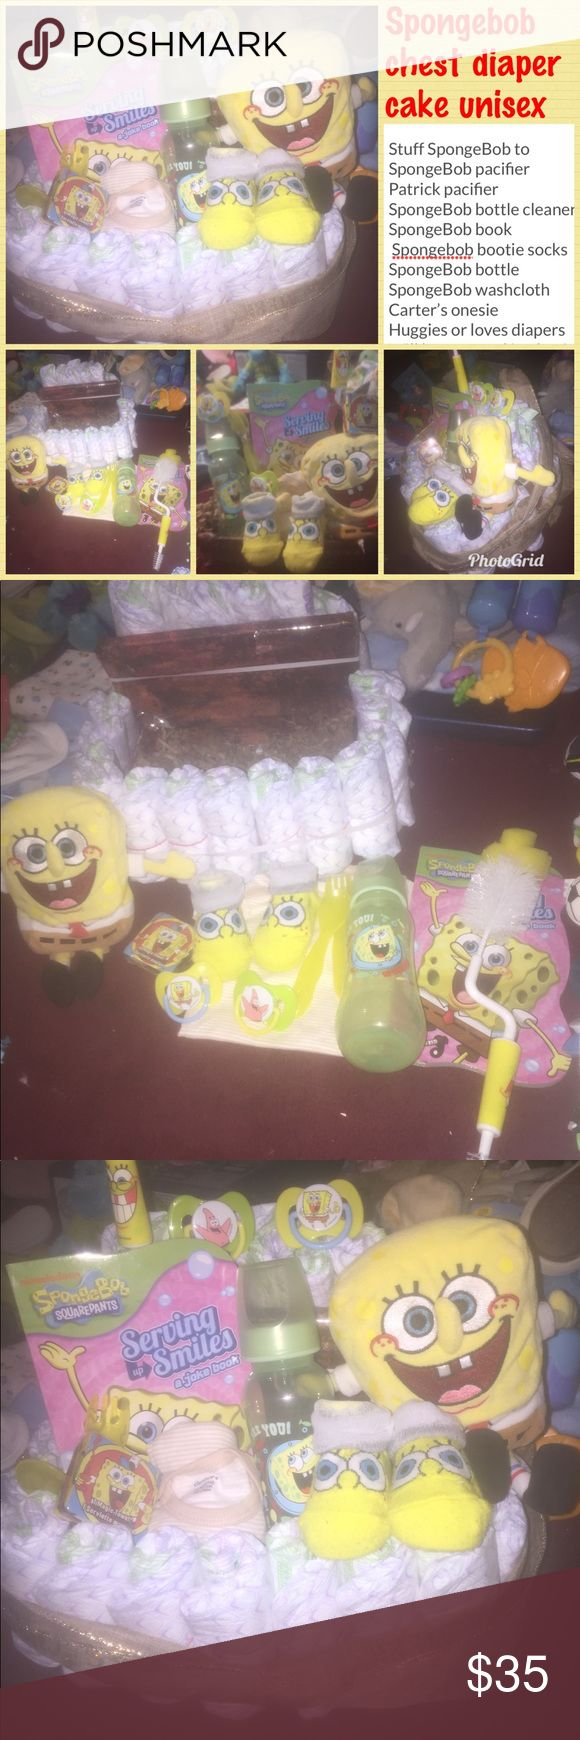 Spongebob chest diaper cake unisex Stuff SpongeBob to  SpongeBob pacifier Patrick pacifier  SpongeBob bottle cleaner  SpongeBob book  Spongebob bootie socks  SpongeBob bottle  SpongeBob washcloth  Carter's onesie  Huggies or loves diapers Will be wrapped in plastic with ribbon Accessories